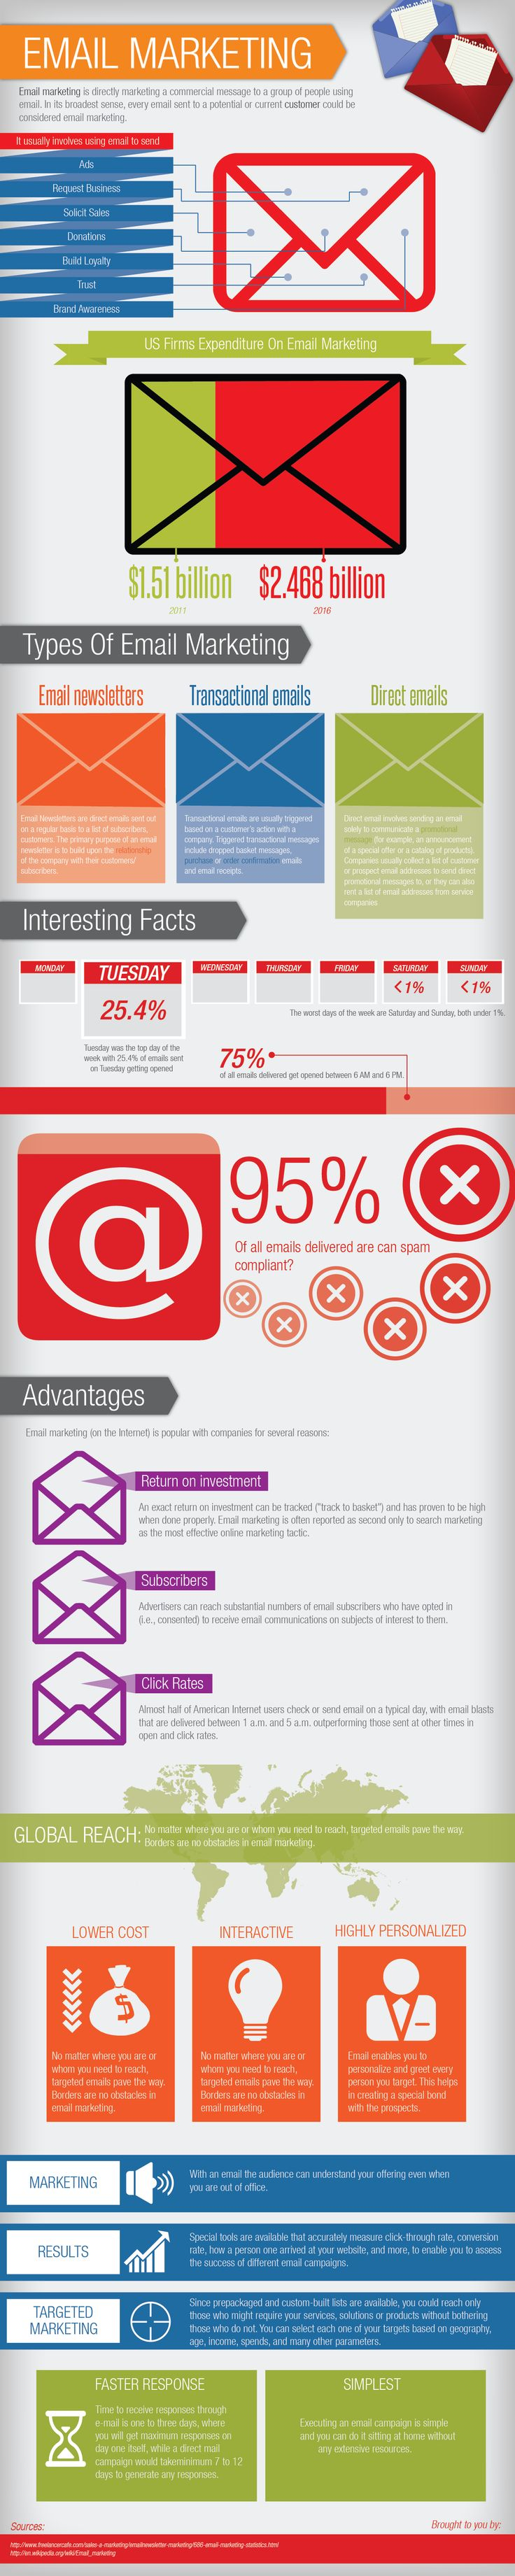 Email Marketing: Better Advertising Than Google's Search Engine?